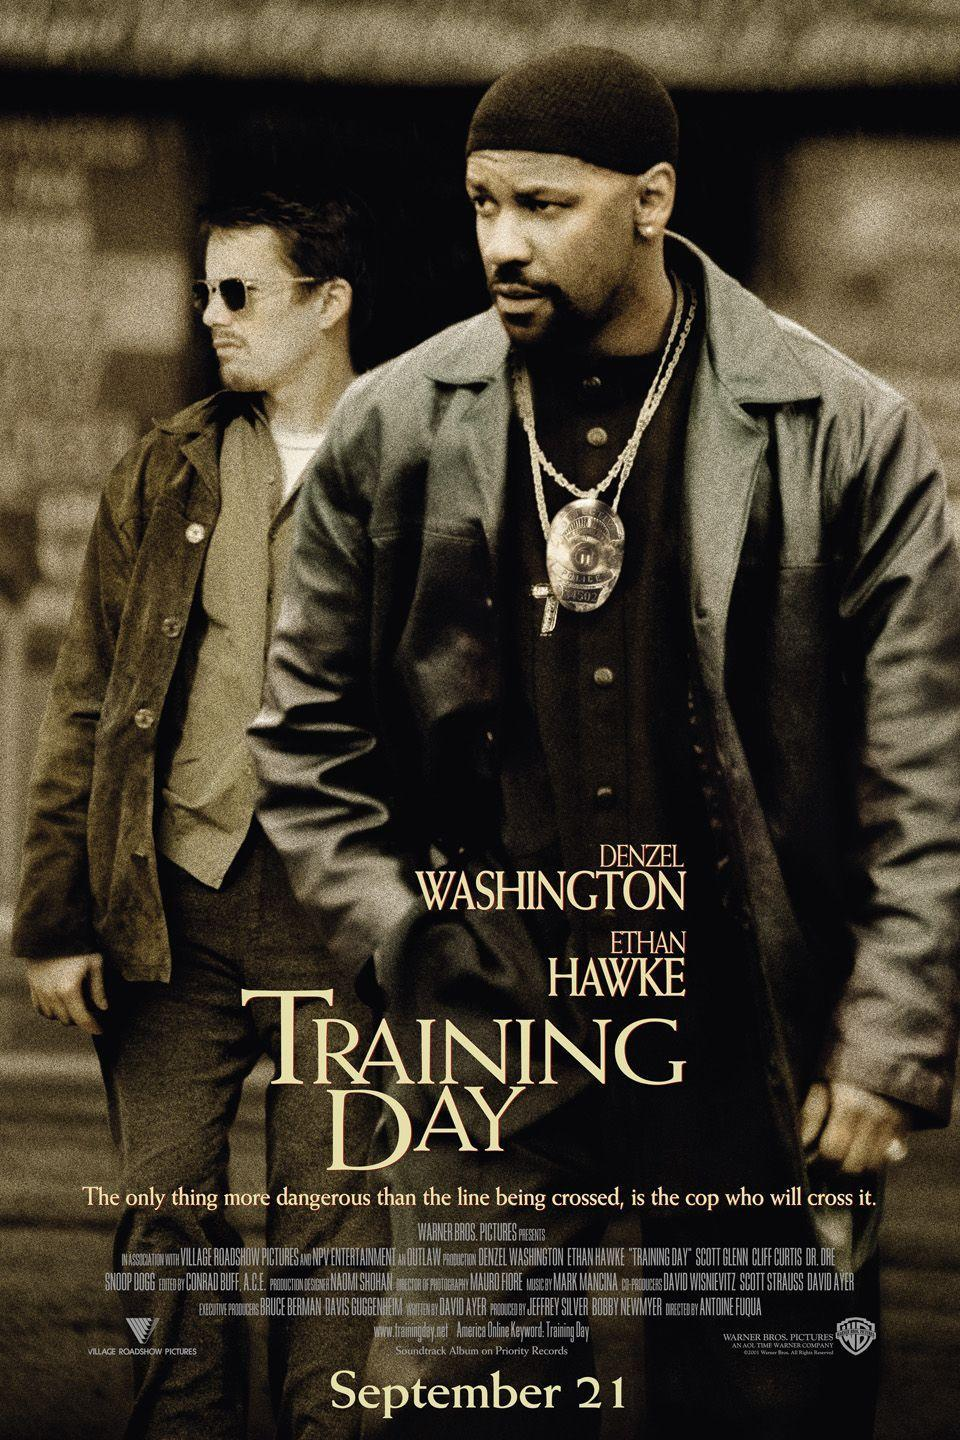 <p>Released on October 5, 2001, <em>Training Day's</em> depiction of a rookie cop in the LAPD is far too relevant today. Denzel Washington won the Academy Award for Best Actor for his role. He was supported in good company by Ethan Hawke and Eva Mendes.</p>